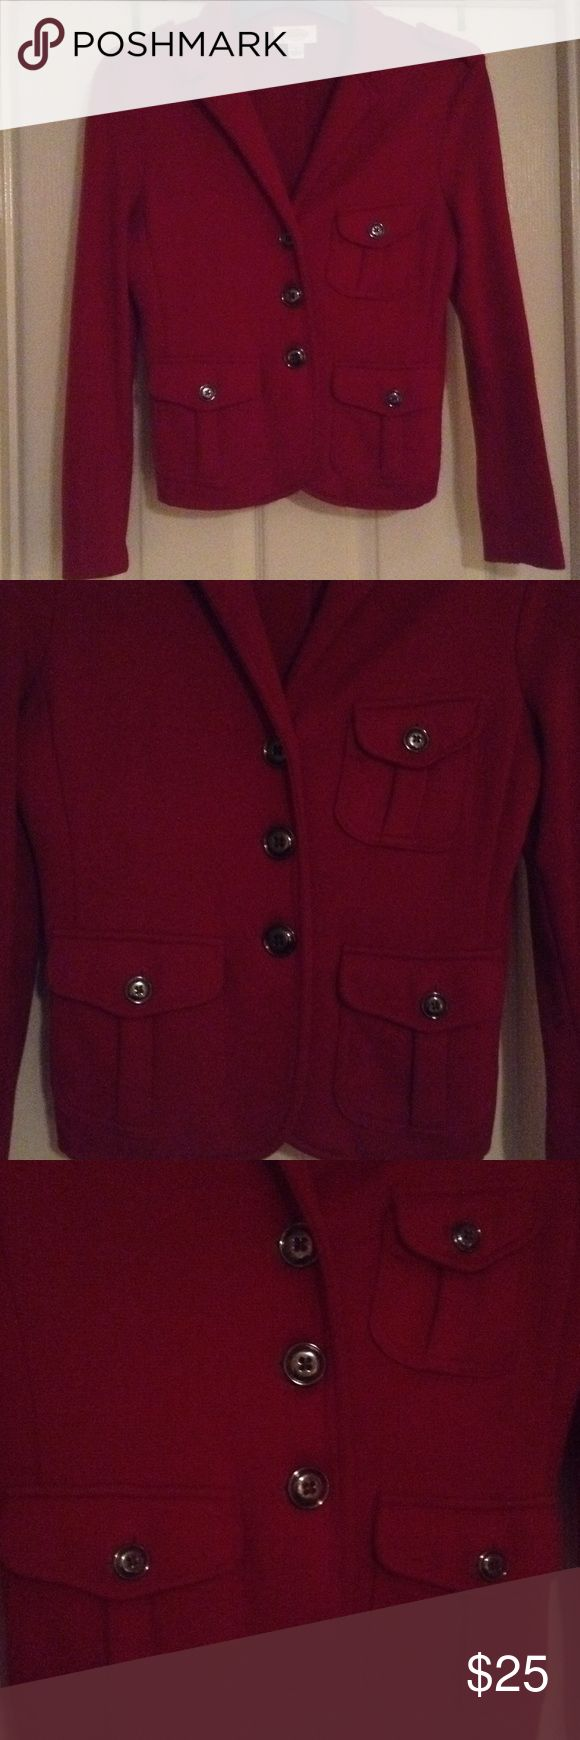 Red blazer Adorable deep red military style blazer with beautiful onyx color buttons by Talbots. Talbots Jackets & Coats Blazers